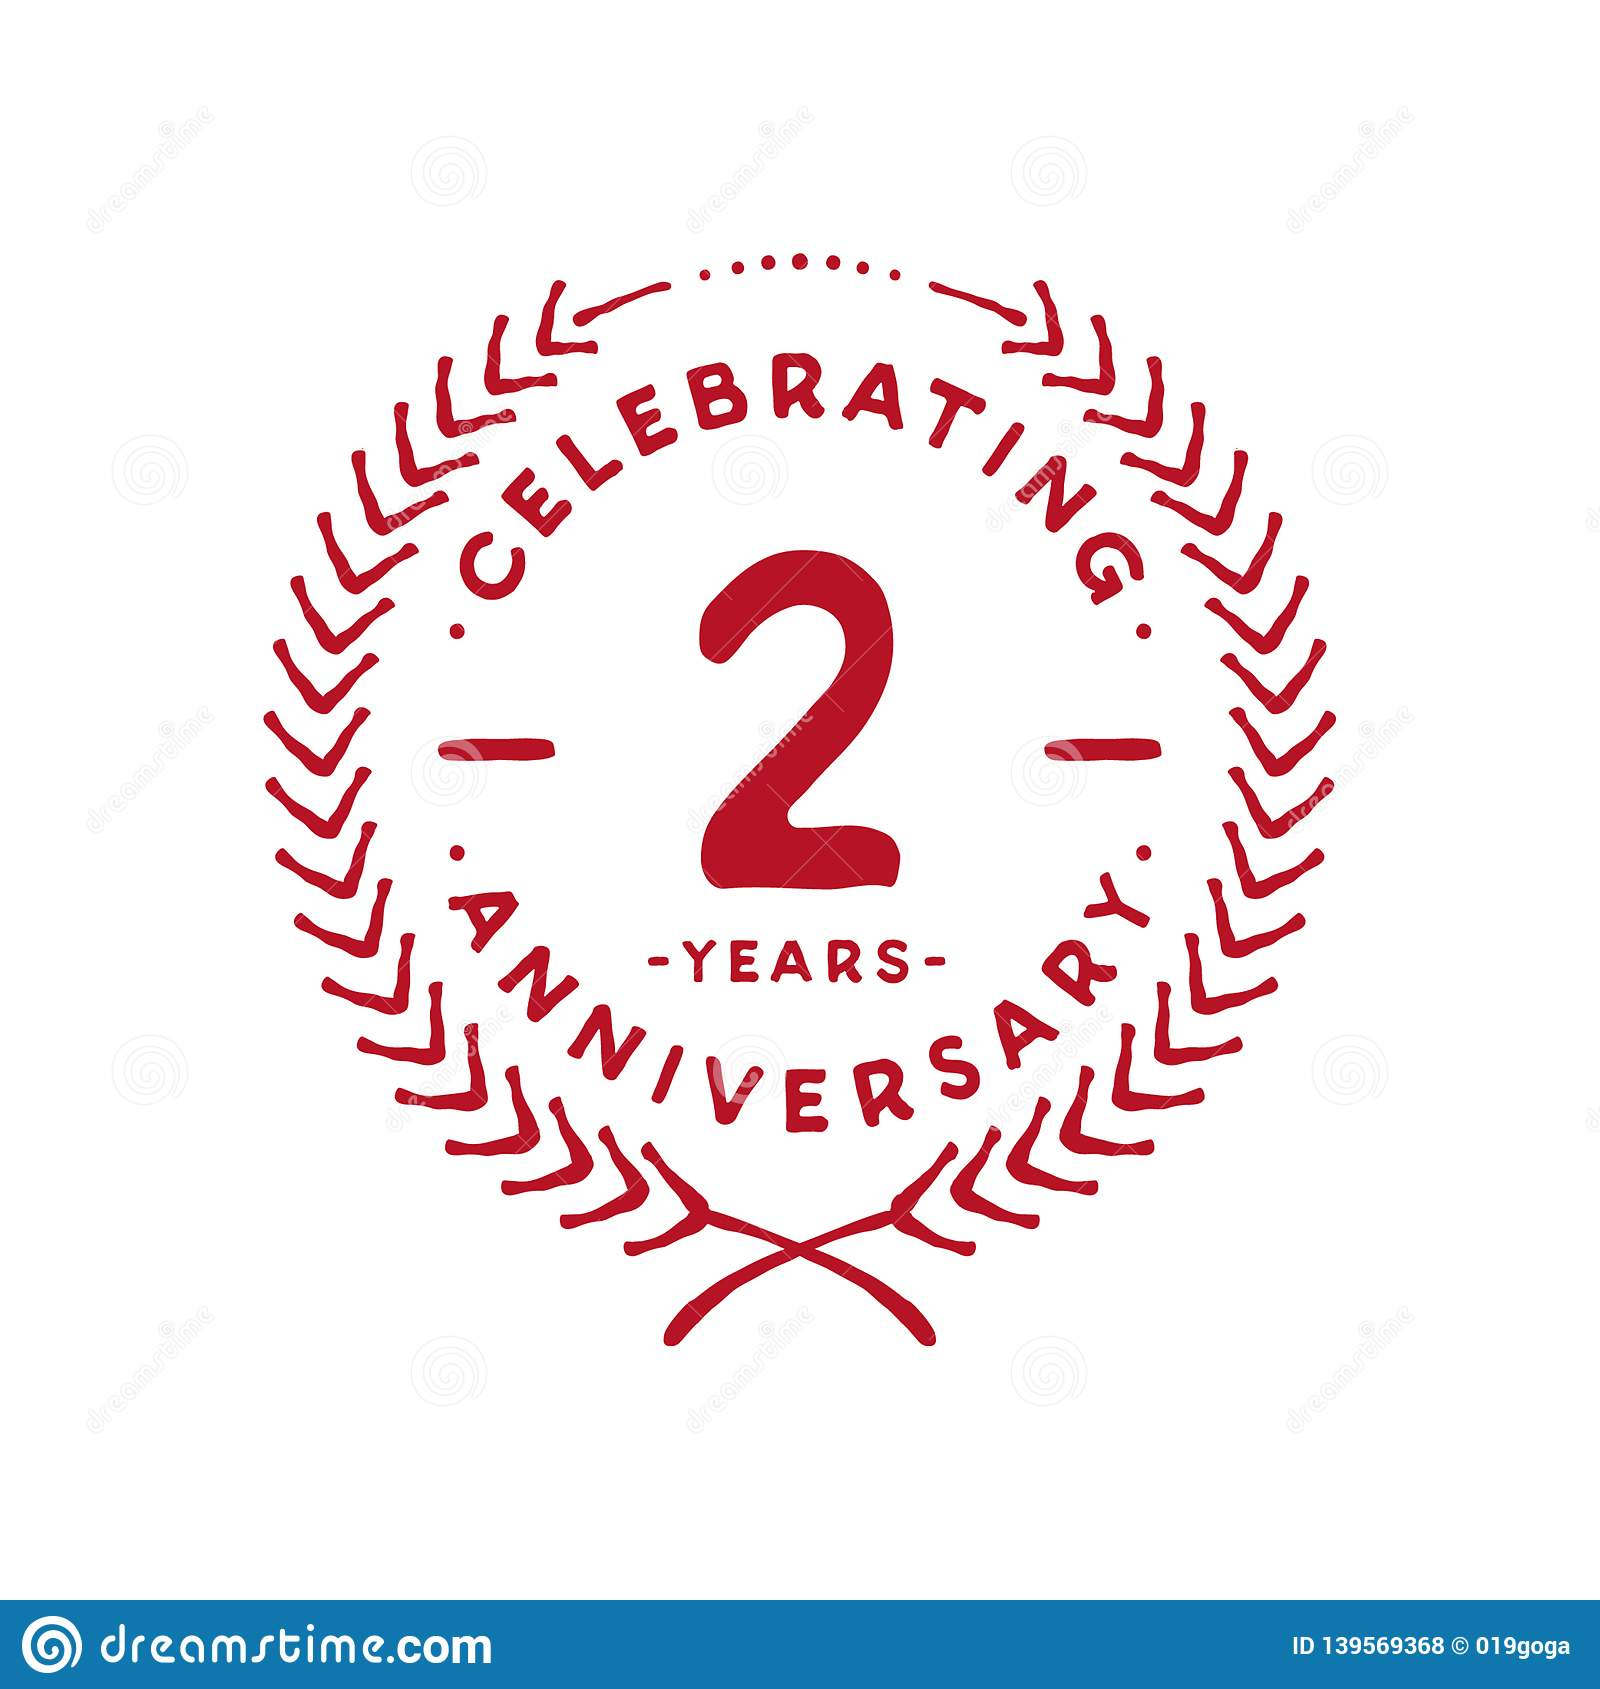 Two Year Anniversary Letter from thumbs.dreamstime.com